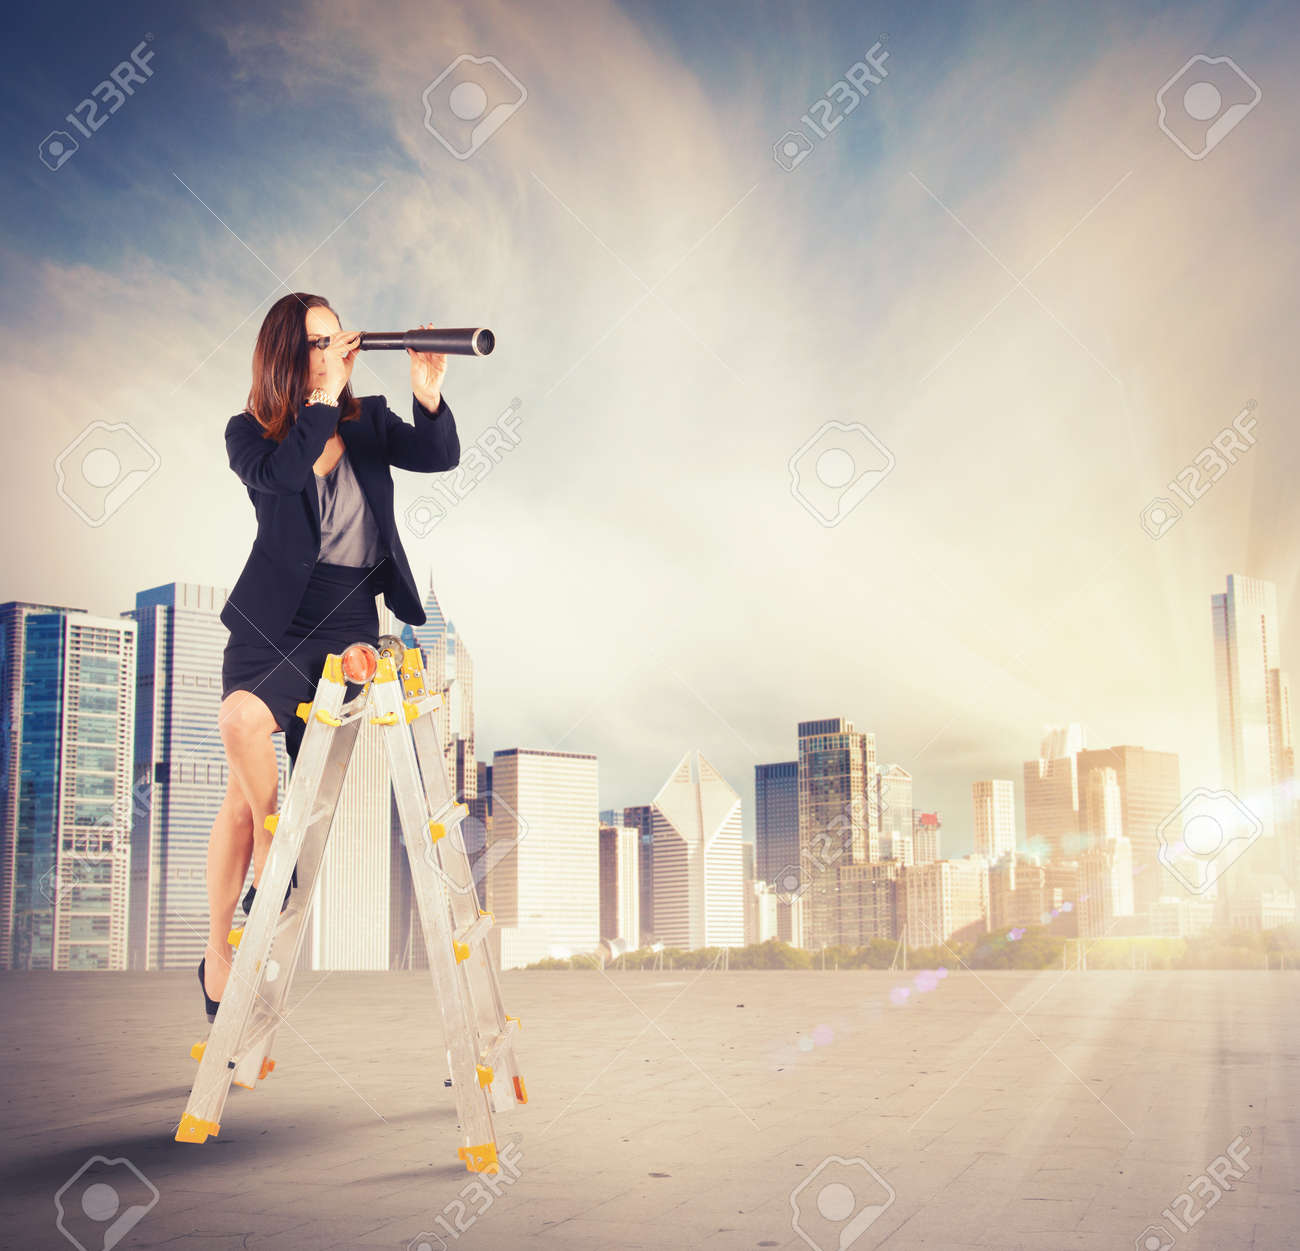 enterprising businessw looking for new job goals stock photo enterprising businessw looking for new job goals stock photo 38266878